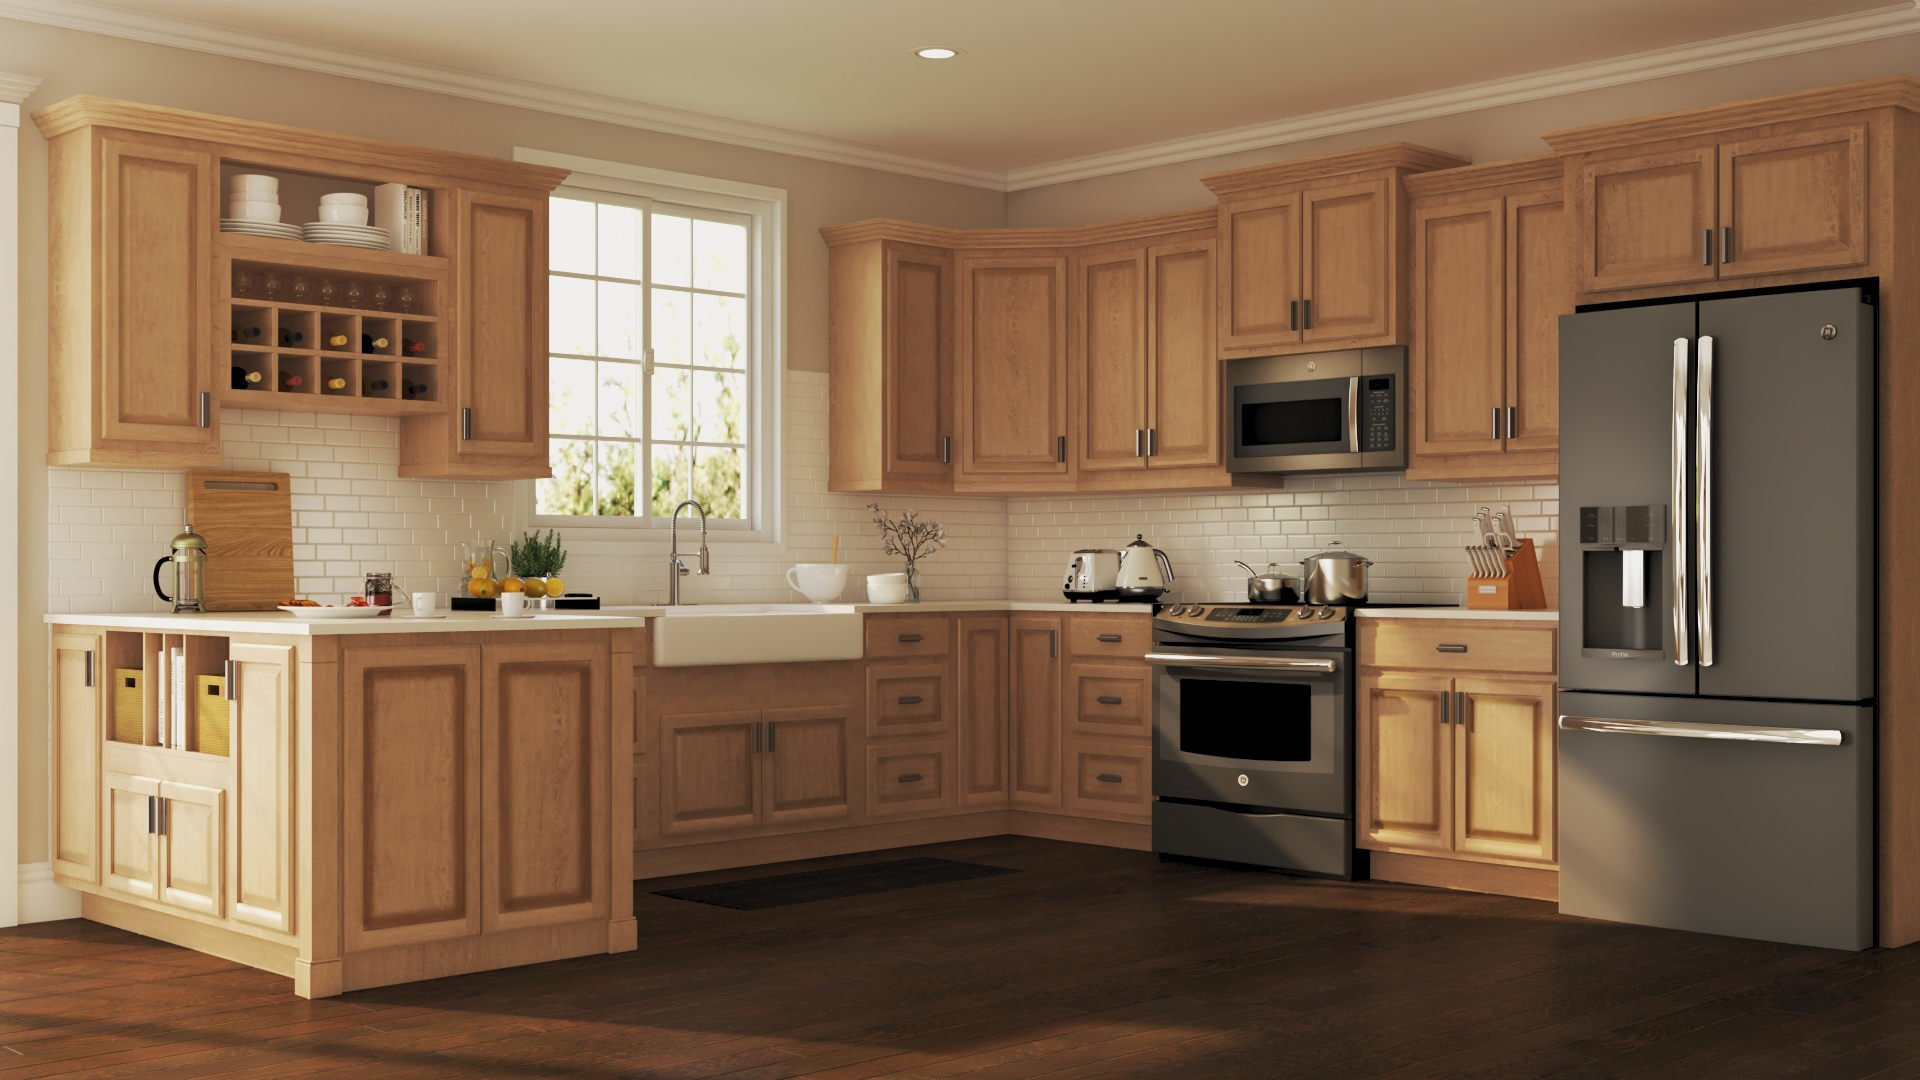 A Guide To Buying Used Kitchen Cabinets And Saving Money